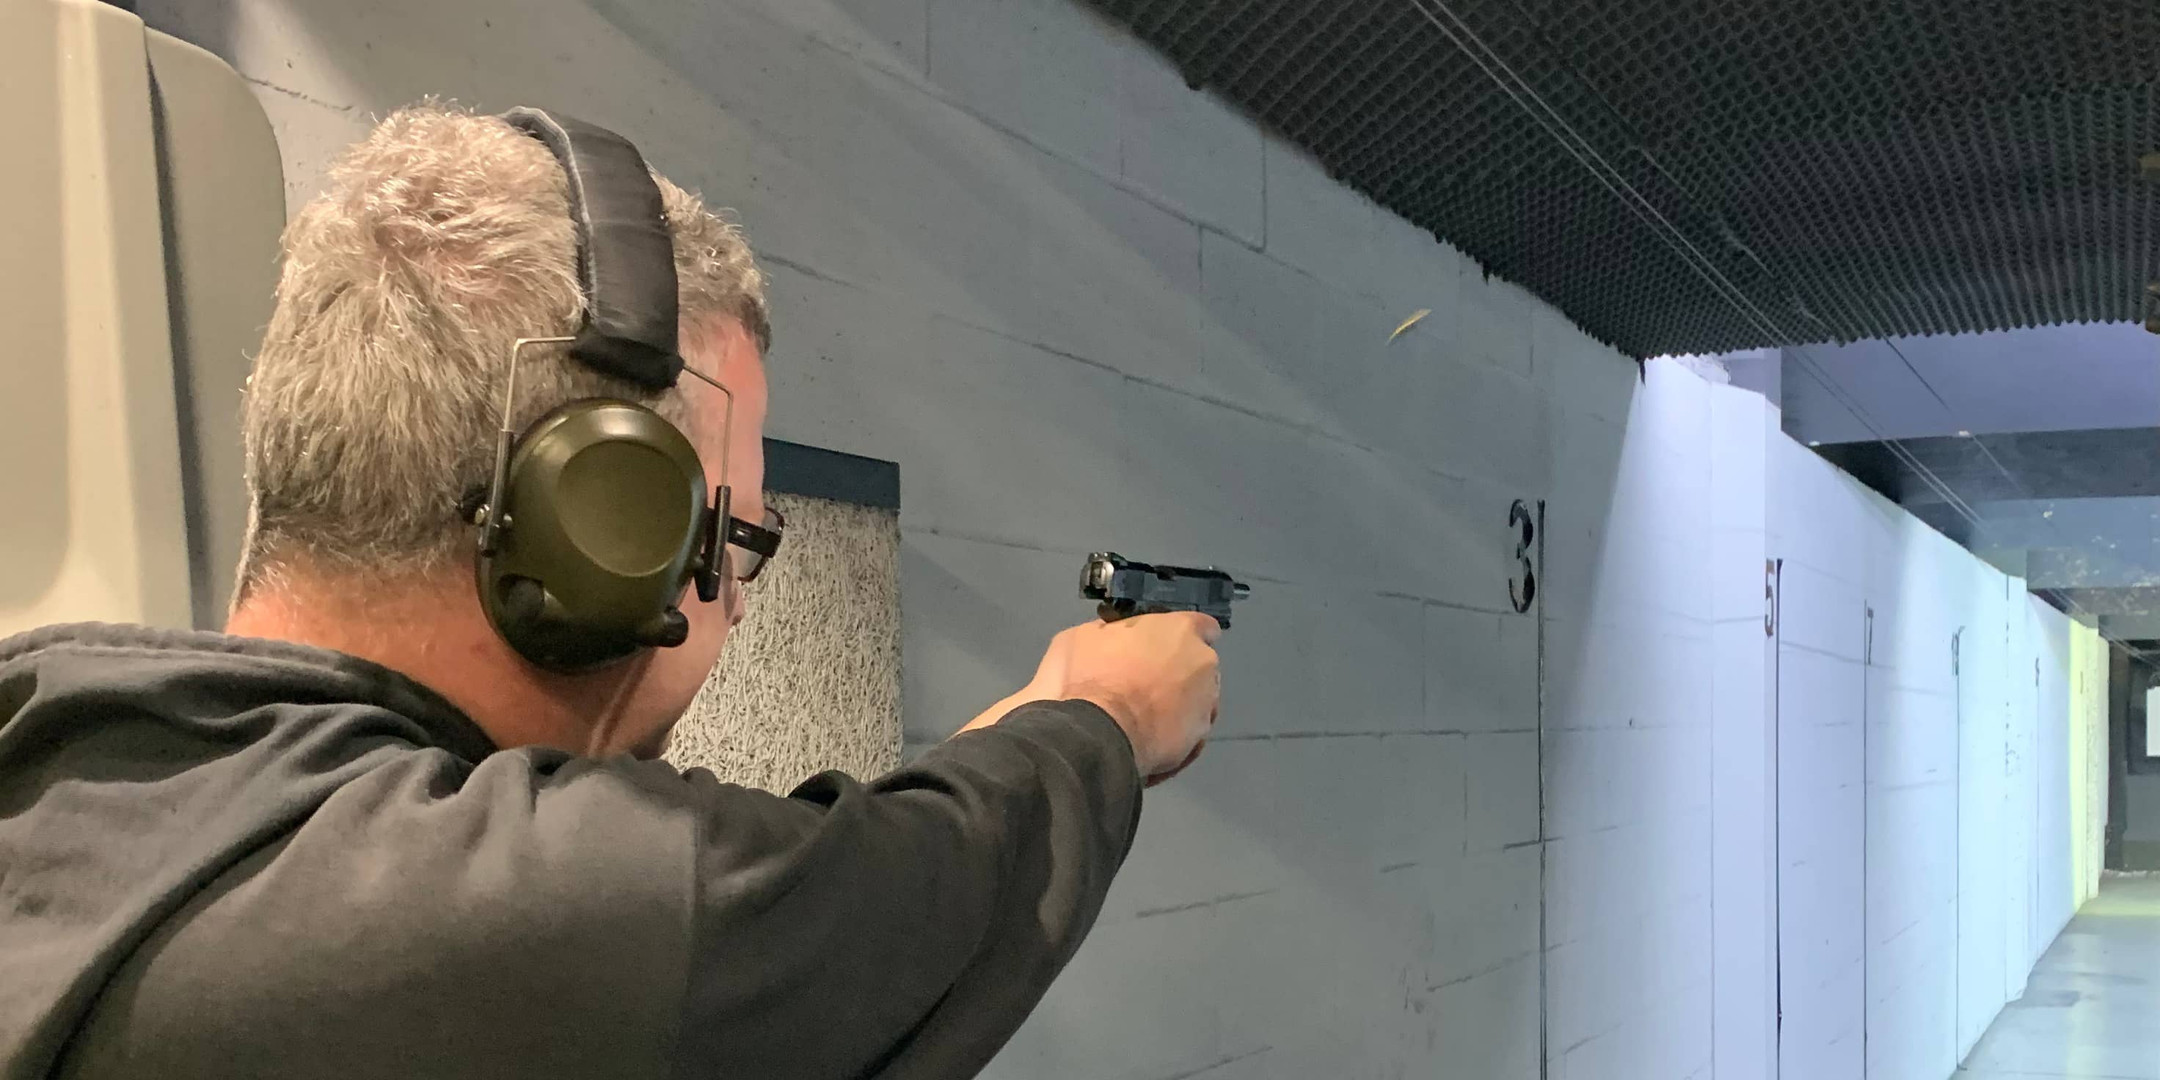 Competition at Hillcrest Inddor Pistol Club